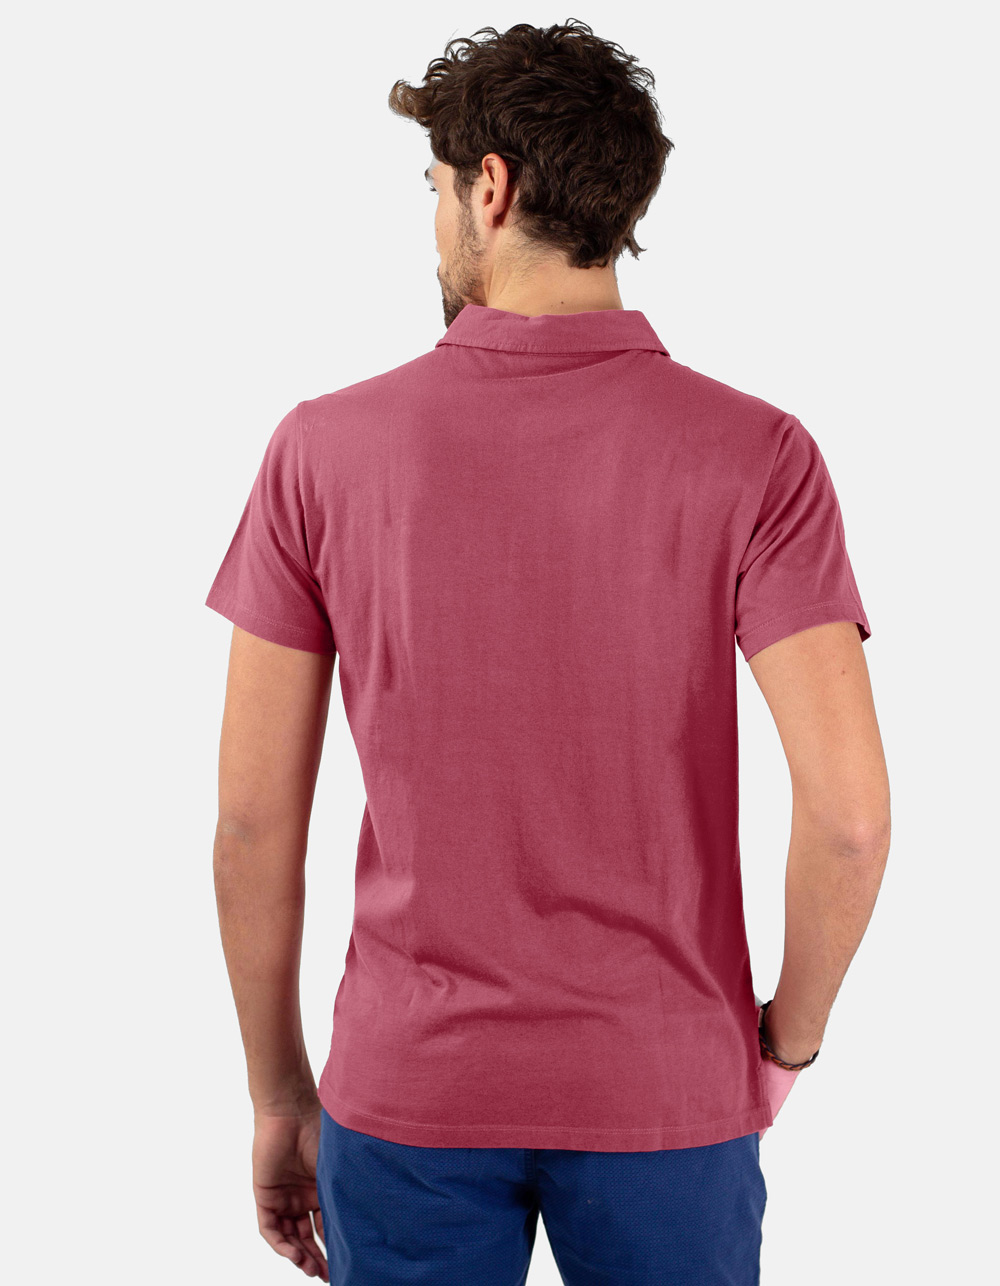 Maroon pocket polo shirt - Backside